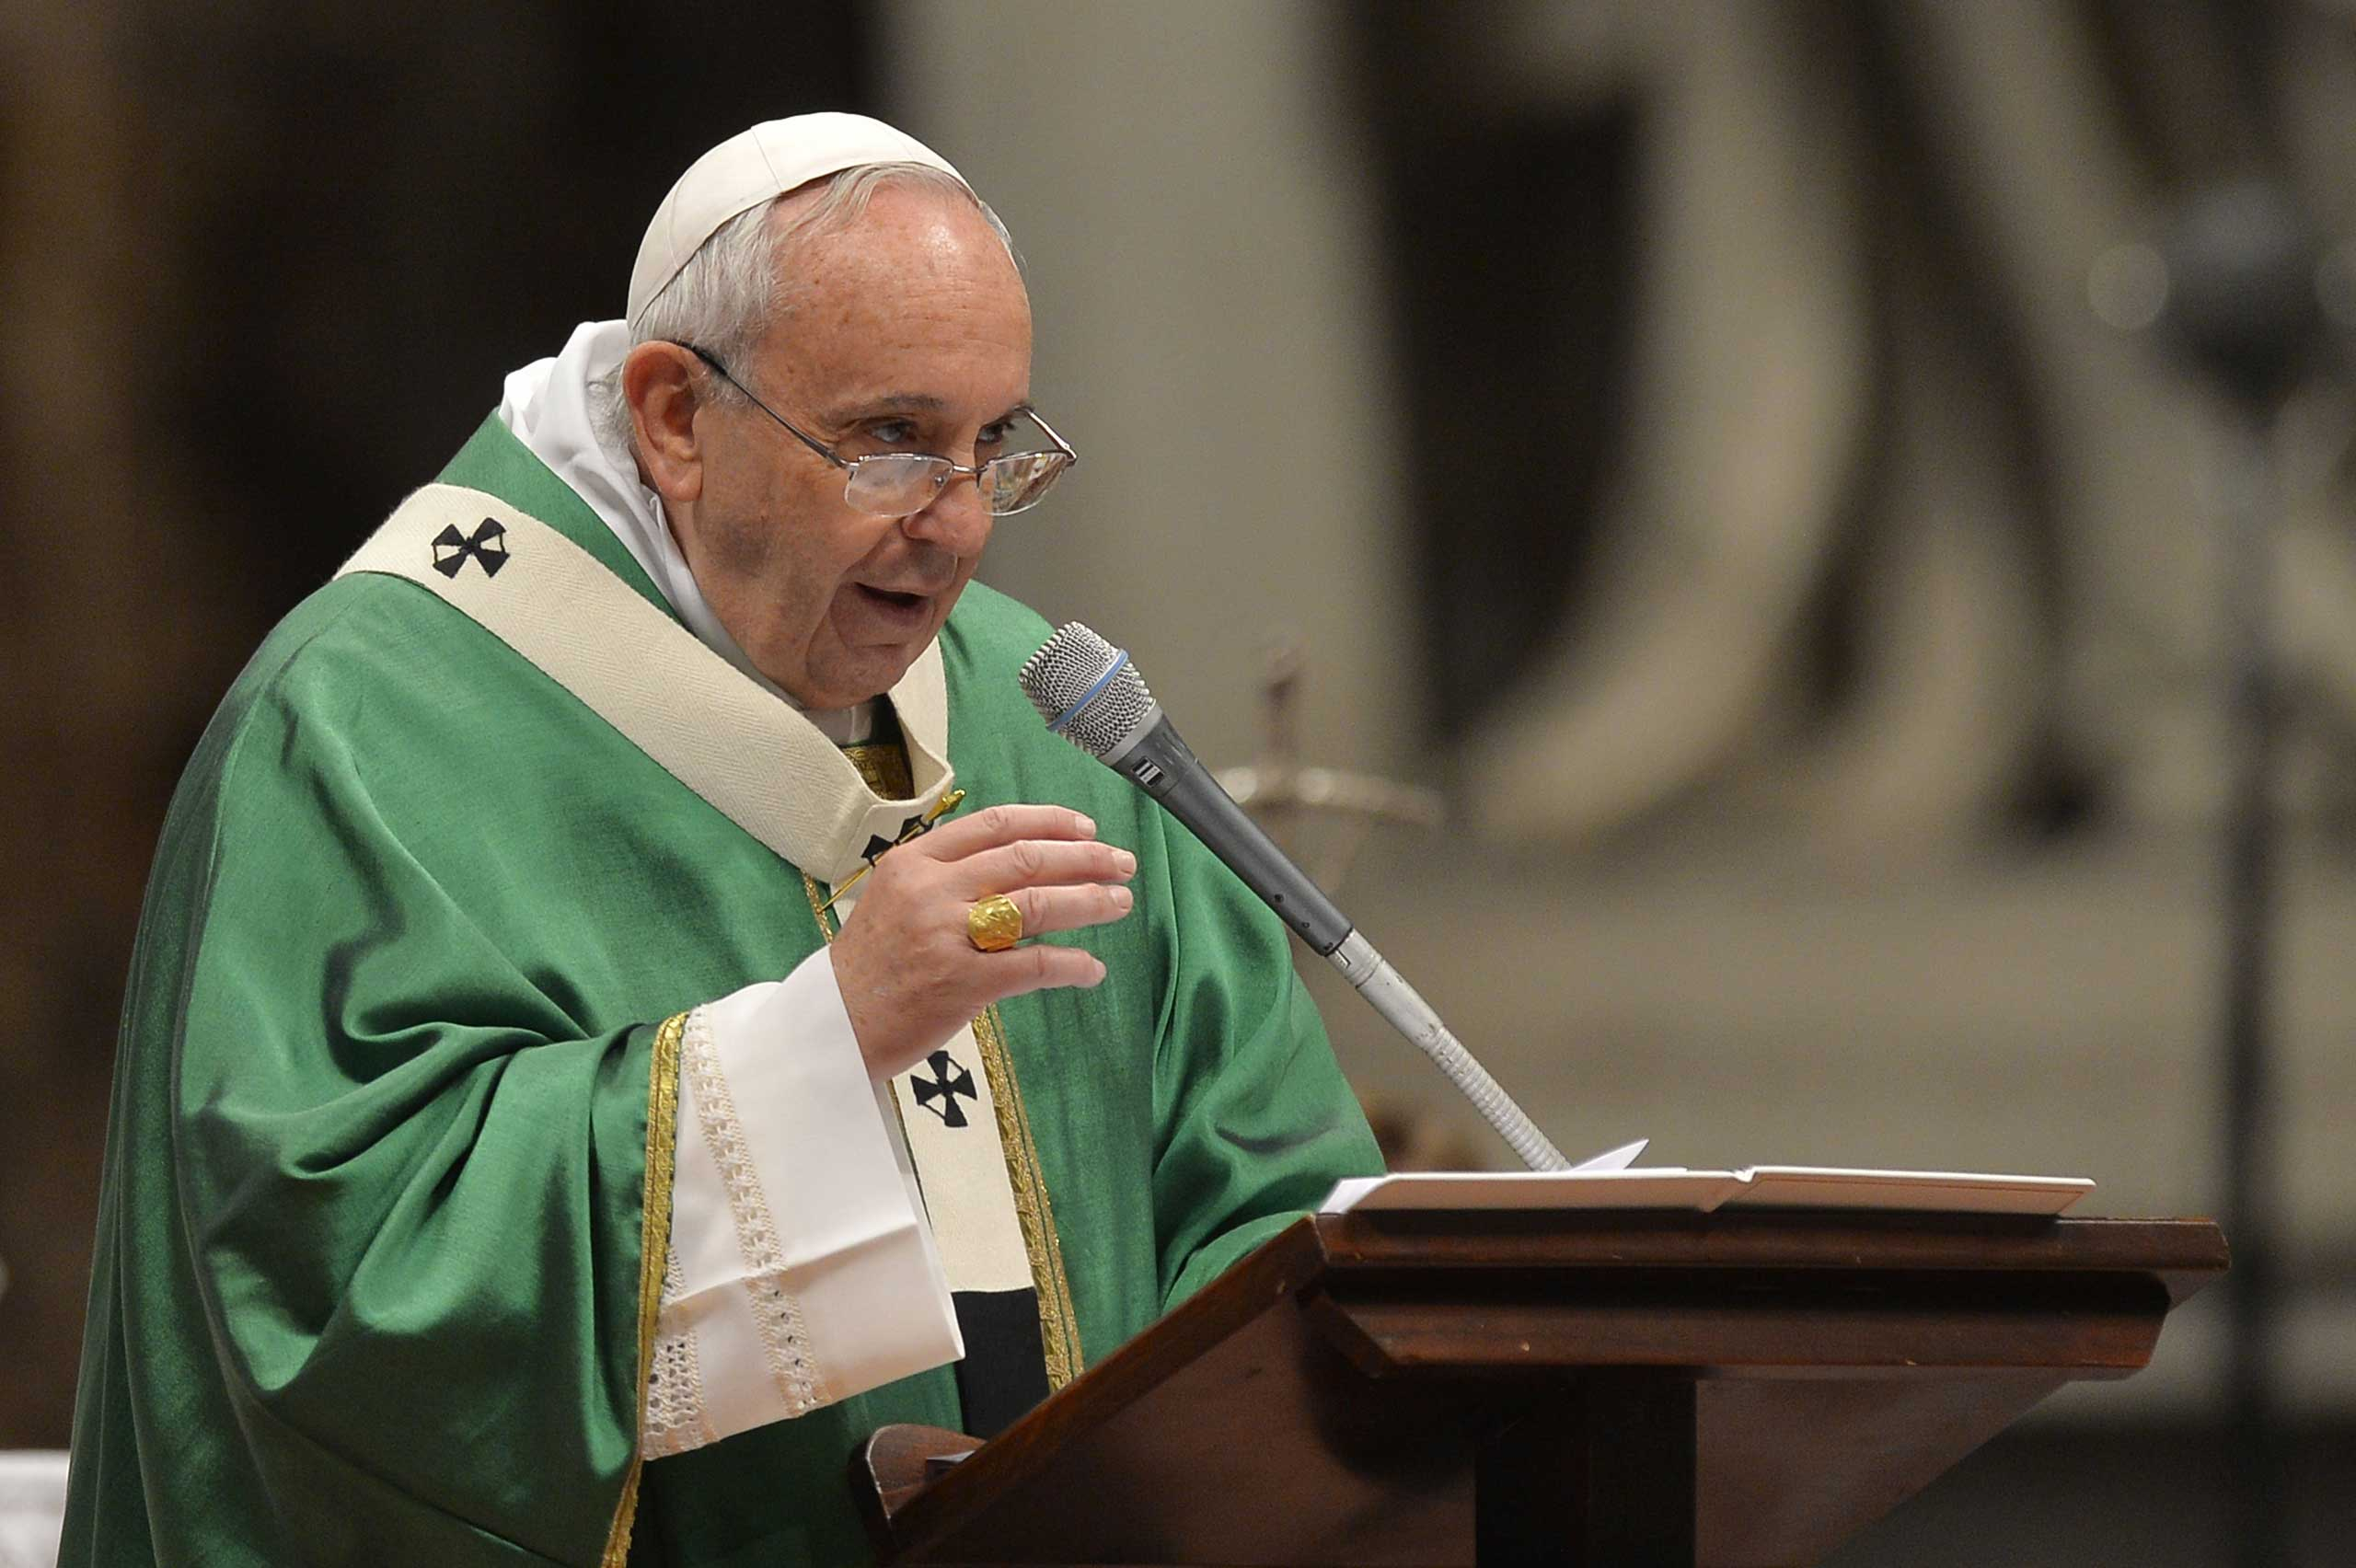 Pope Francis leads a mass on February 15, 2015 at St. Peter's basilica in Vatican.